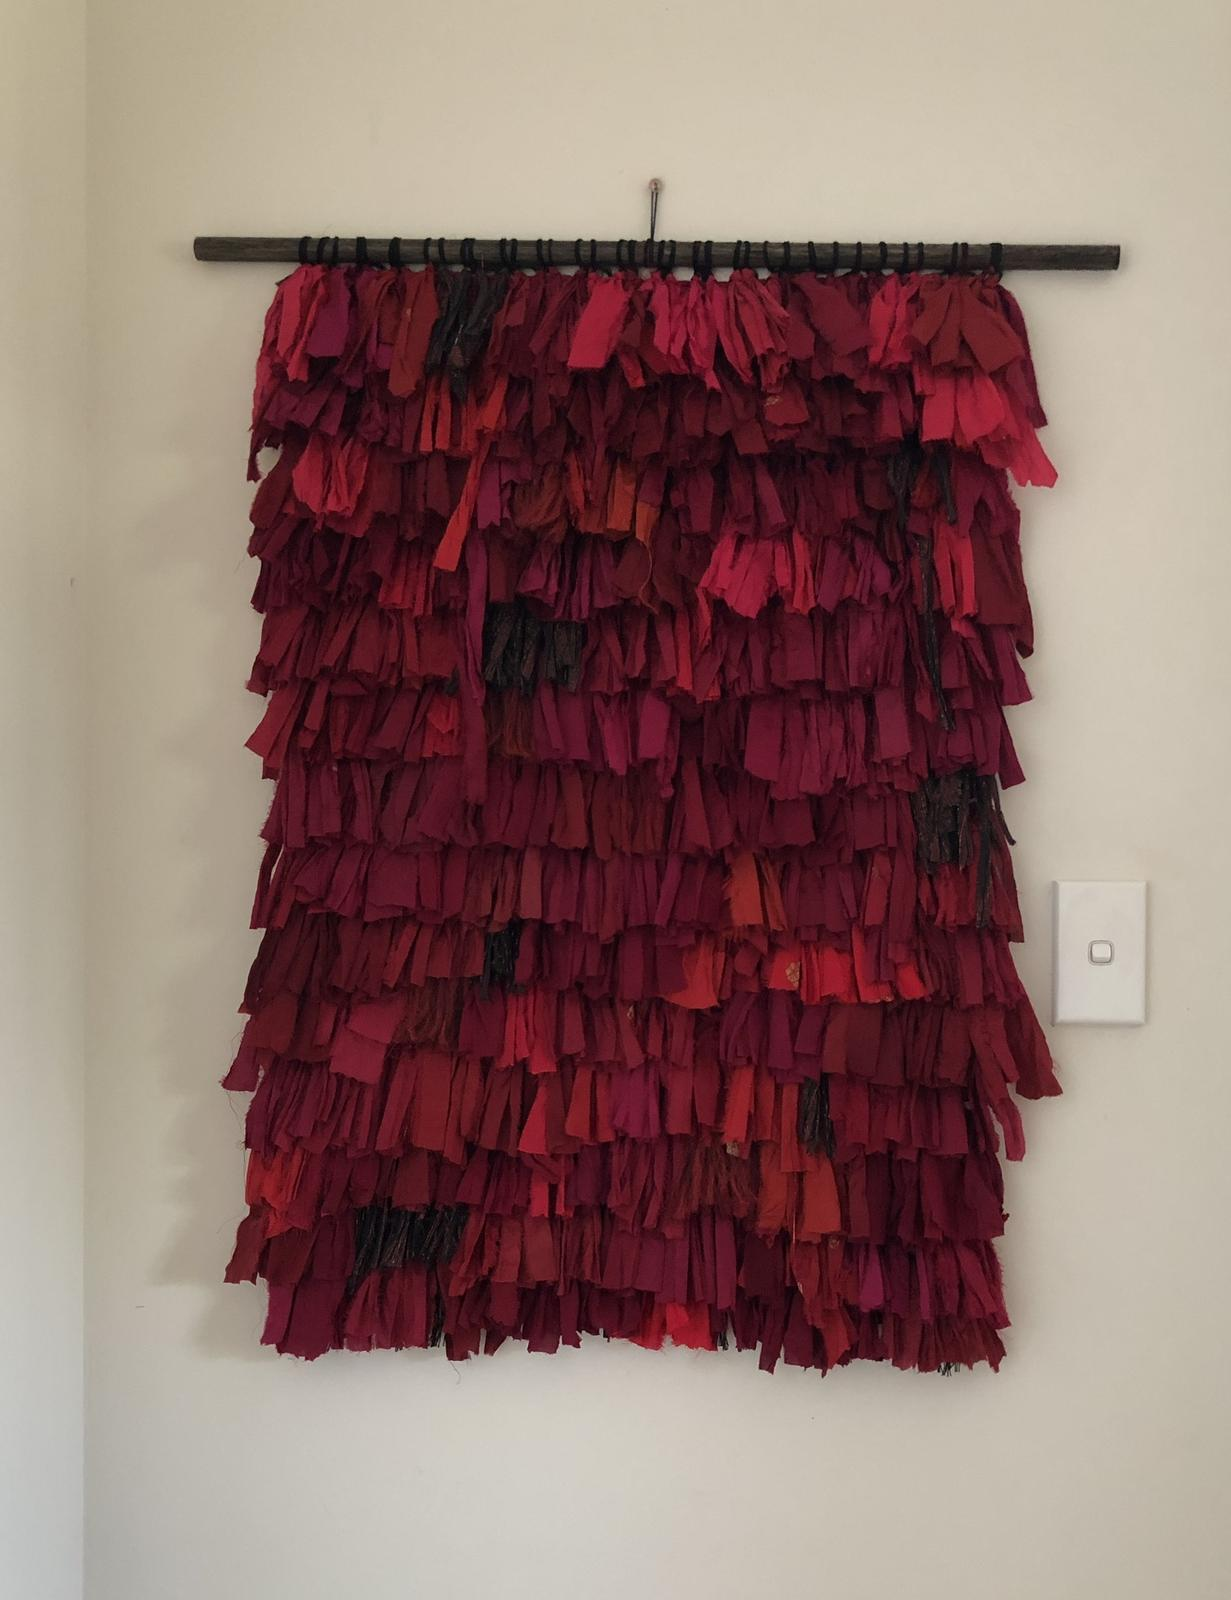 Weaved wall hanging